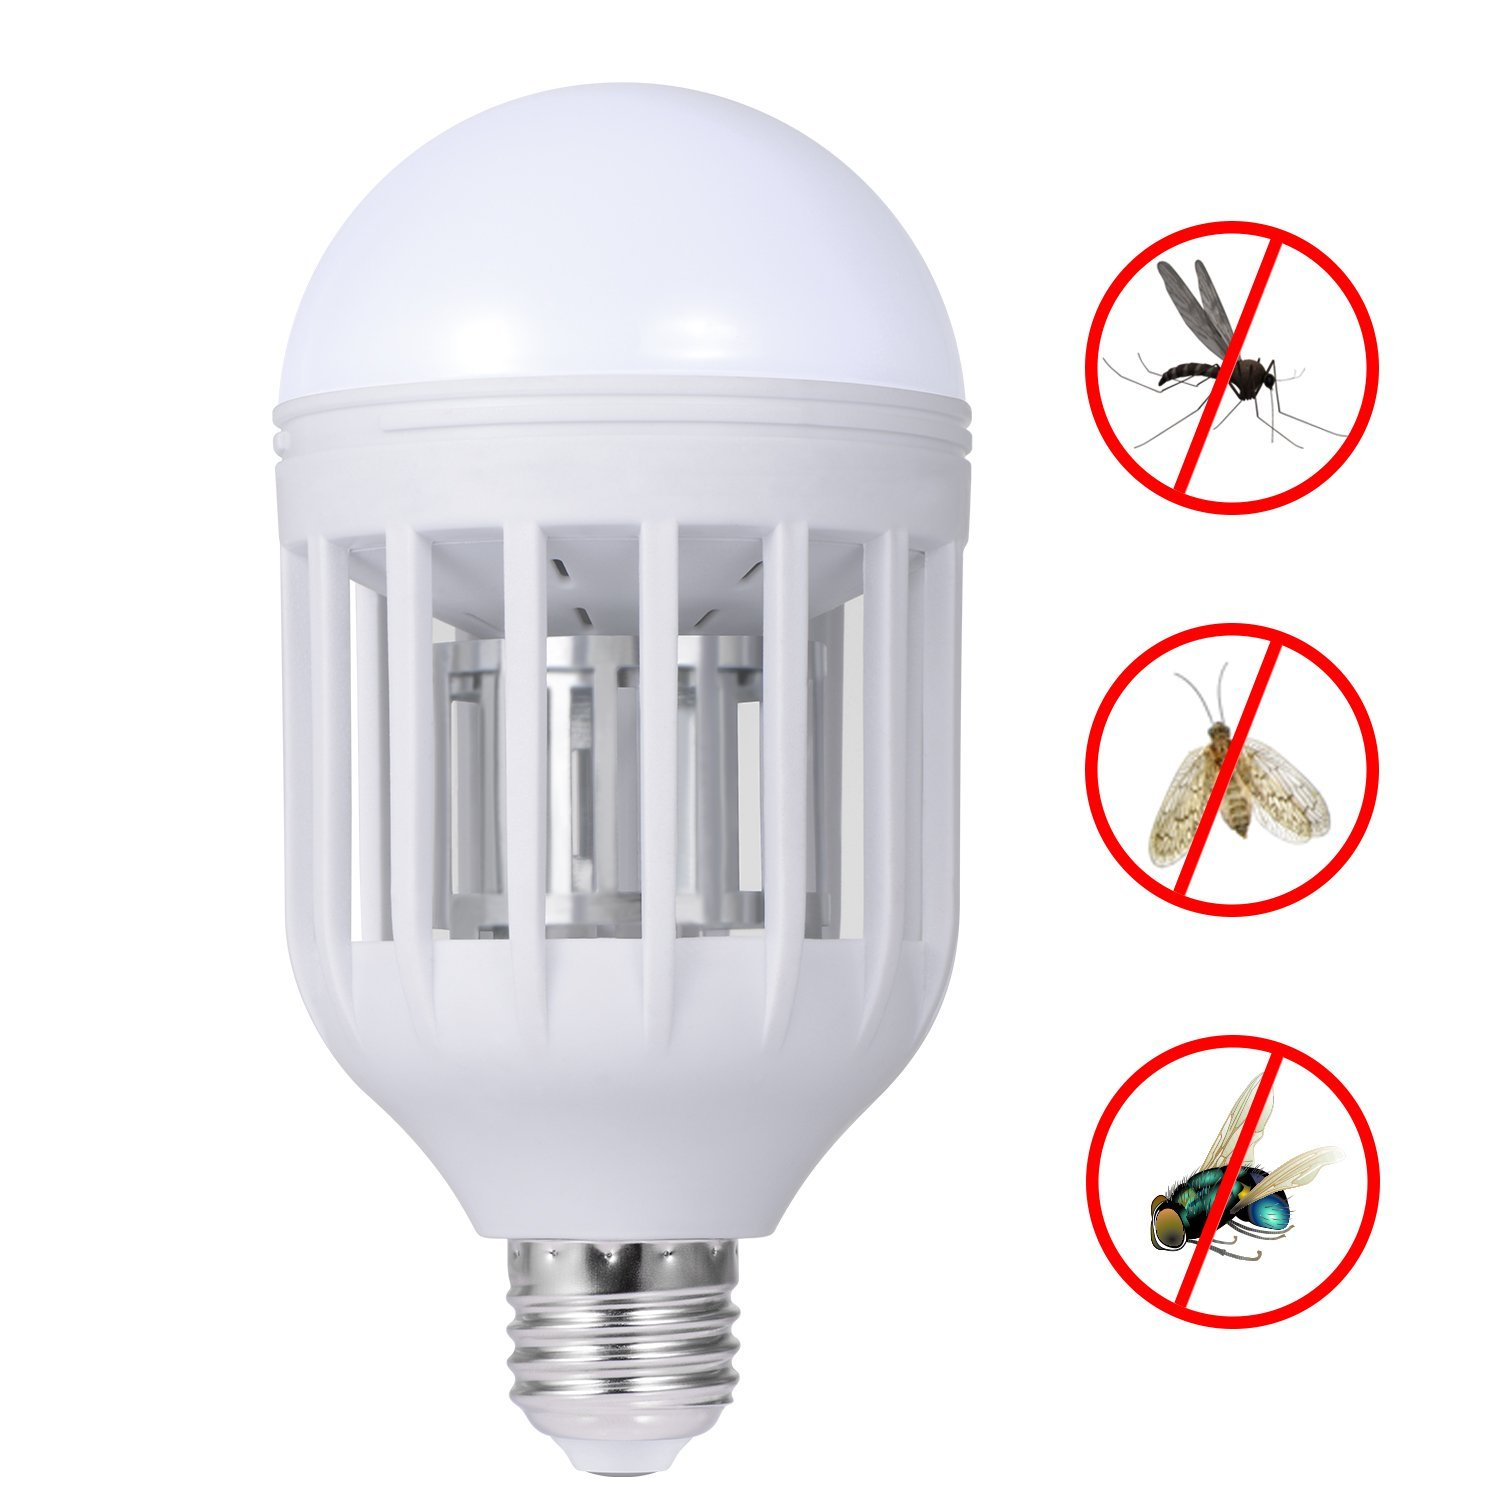 12W E27 led bulb fly mosquito killer built in insect trap light lamp socket use for indoor home garden backyard AC110V/220V in garden мармелад 10